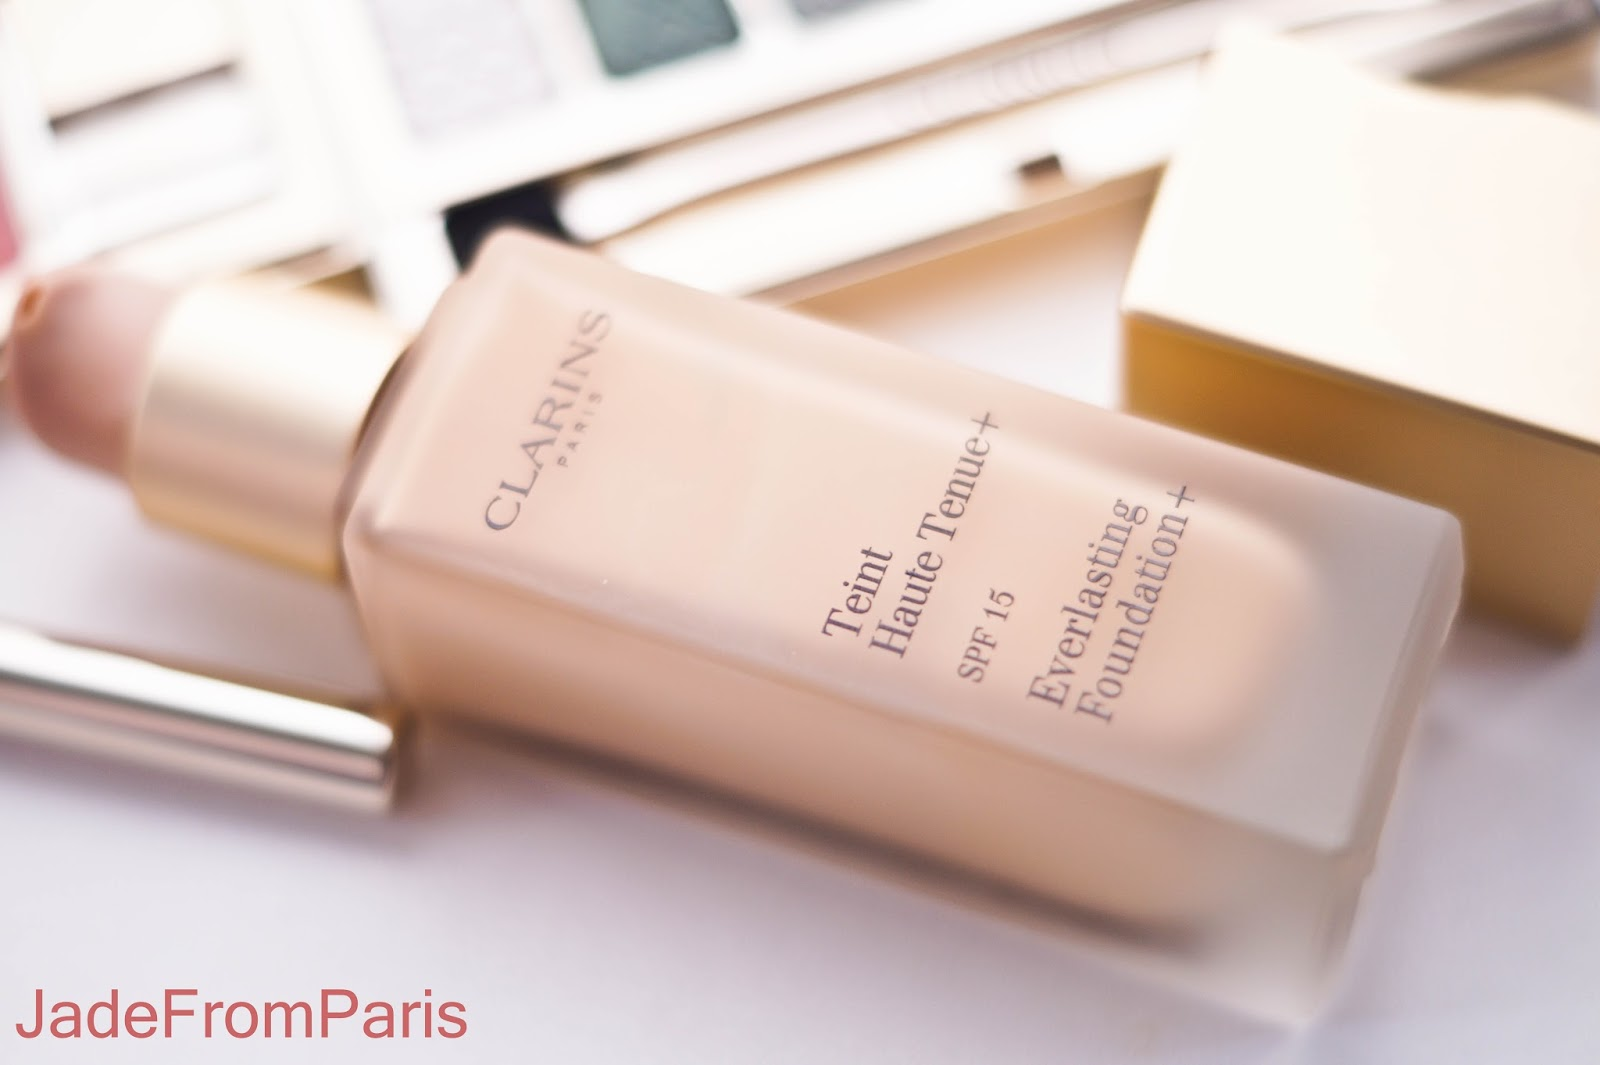 garden escape clarins